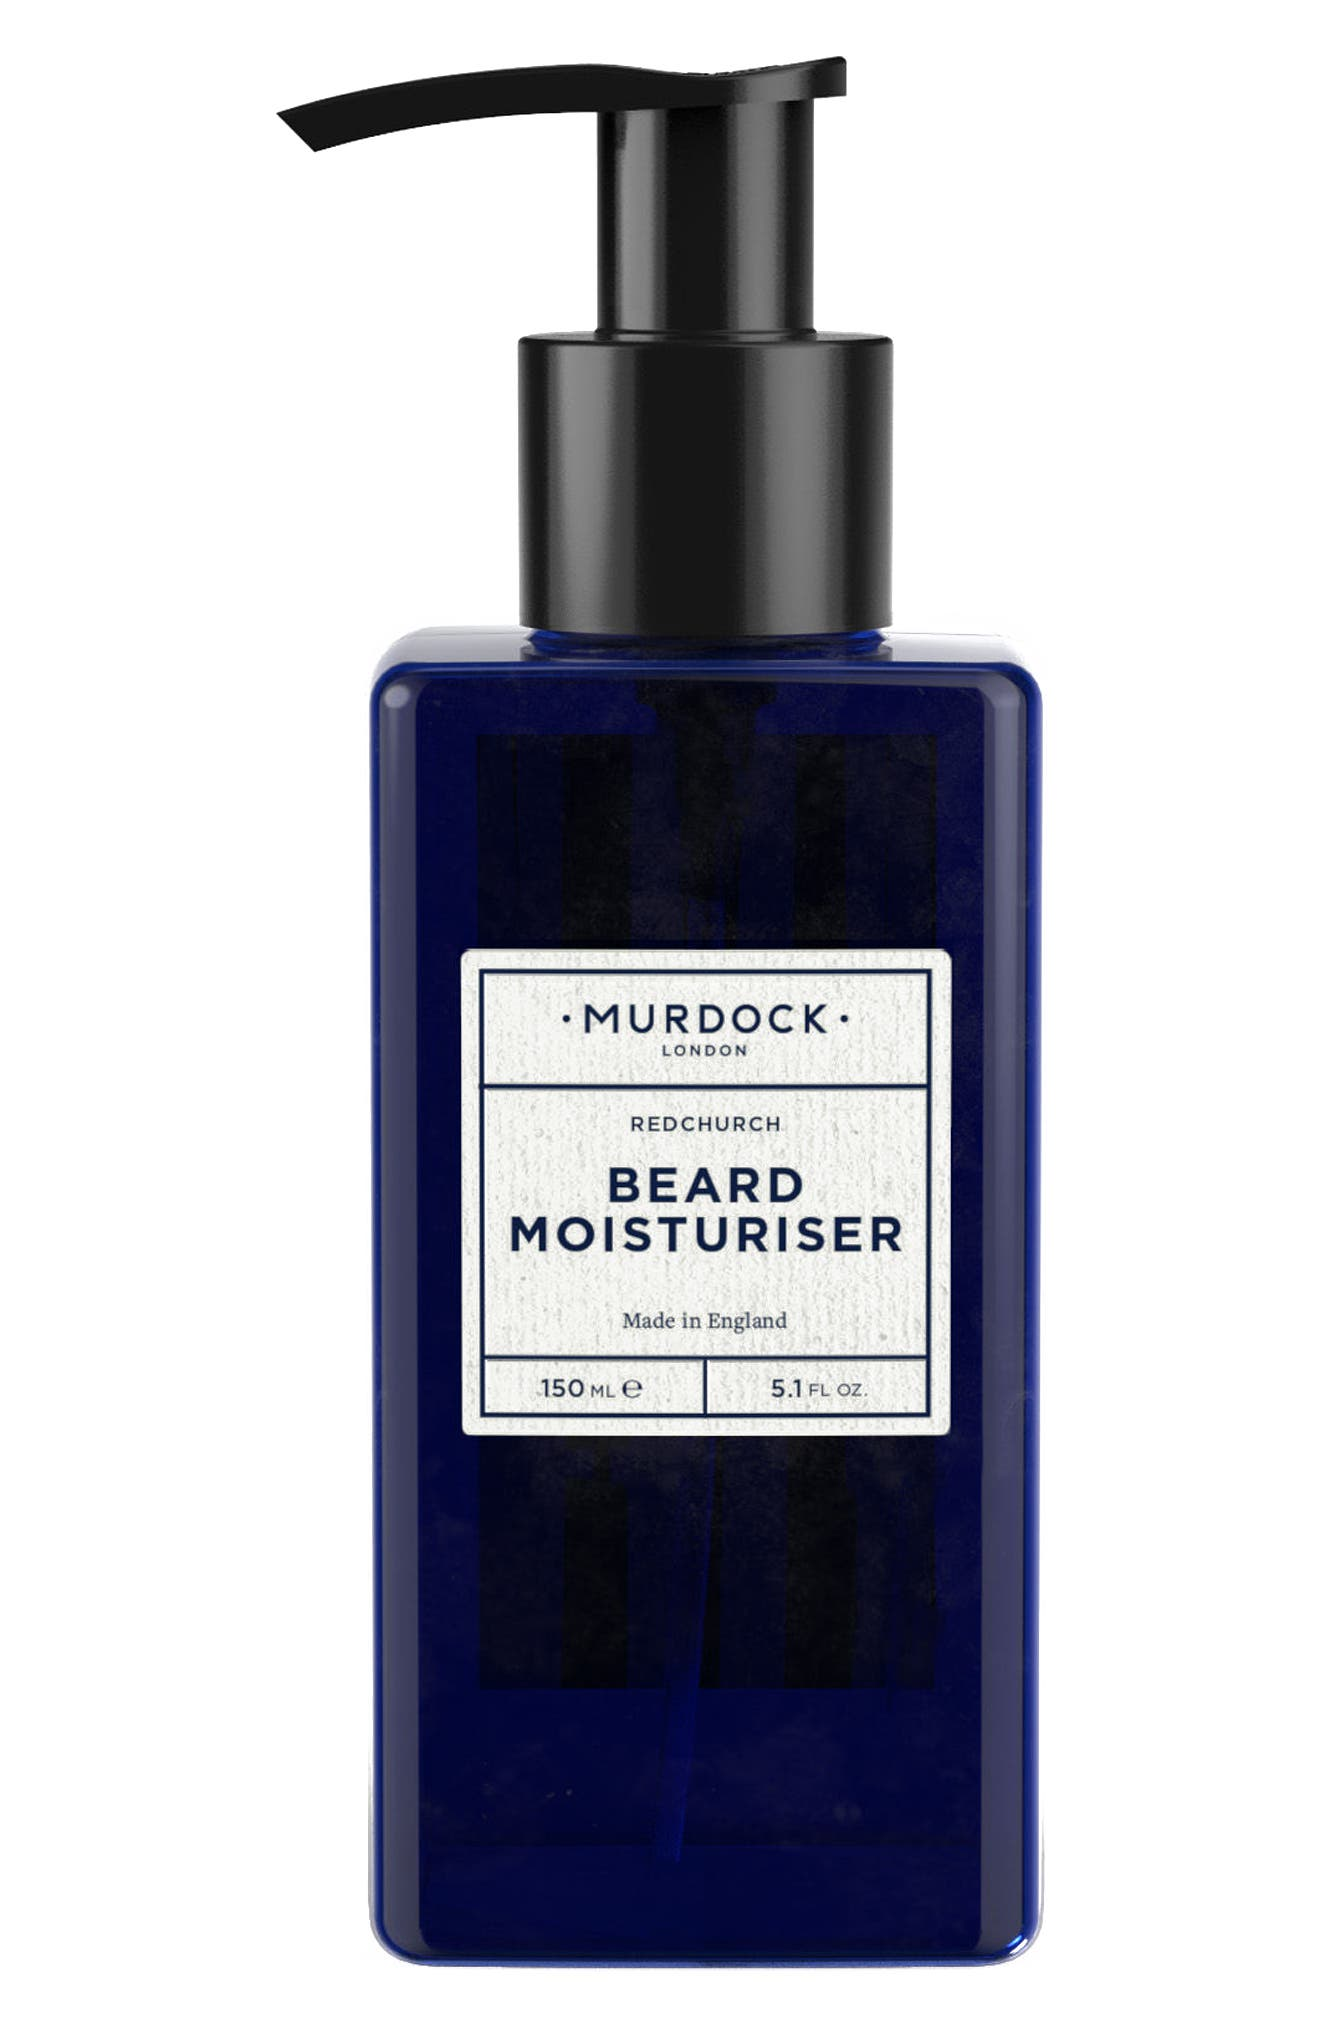 What it is: An all-in-one beard moisturizer that conditions and softens facial hair and the skin underneath. What it does: It leaves your beard looking healthier and feeling more comfortable for you and anyone who comes near it. How to use: Run two pumps upward through your facial hair, as close to the skin as possible daily. Style Name: Murdock London Beard Moisturizer. Style Number: 5576683. Available in stores.